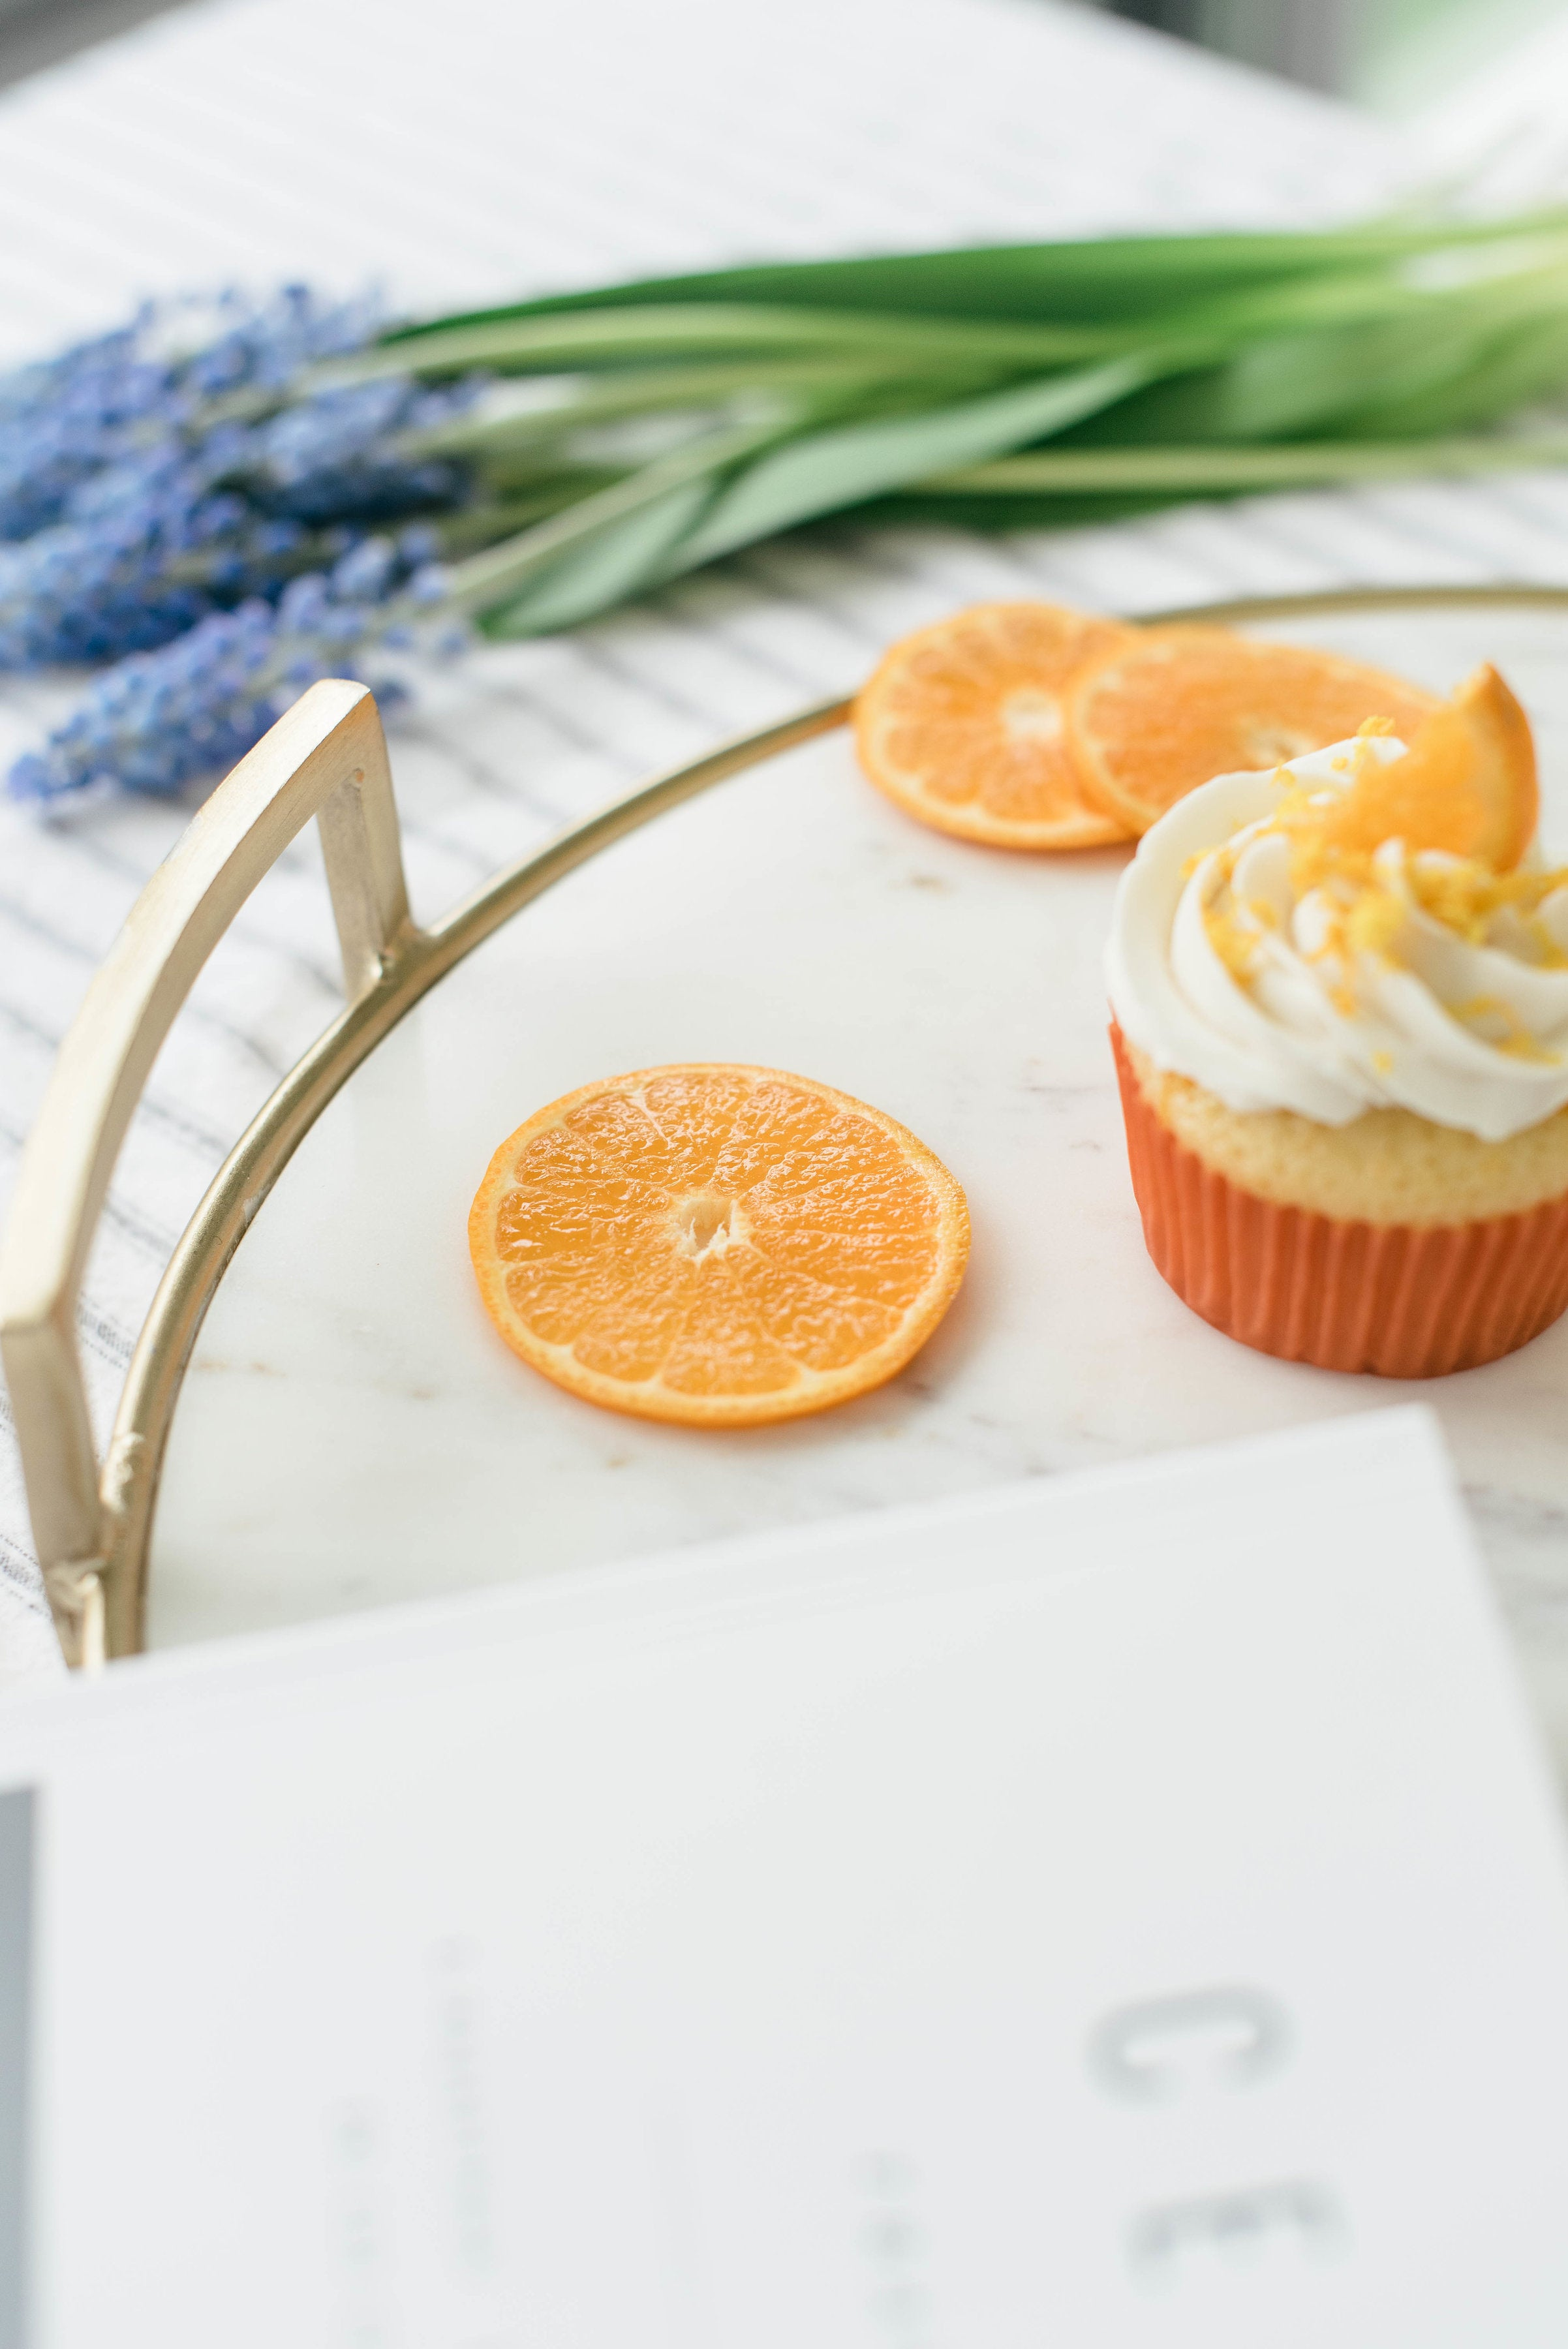 Close up image of the side of a Miss Jones Baking Co Mimosa Cupcake on a platter next to orange slices, a magazine, and a bouquet